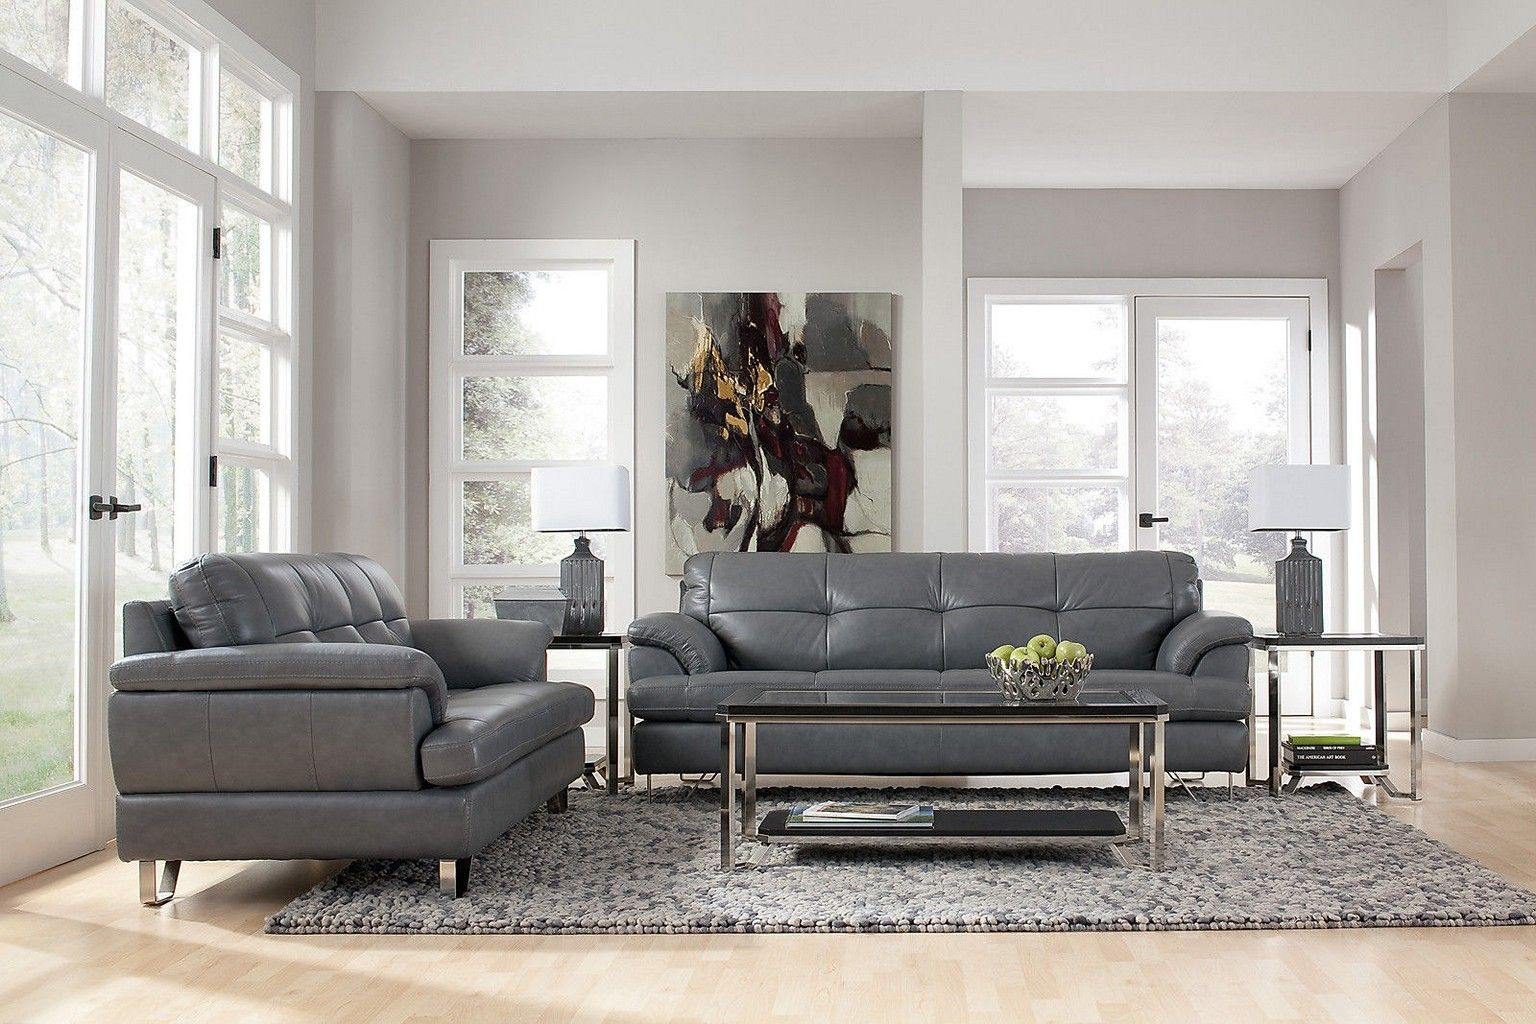 Living Room Design With Black Leather Sofa Alluring Beautiful Grey Sofa Living Room Image Grey Sofa Living Room Decorating Design